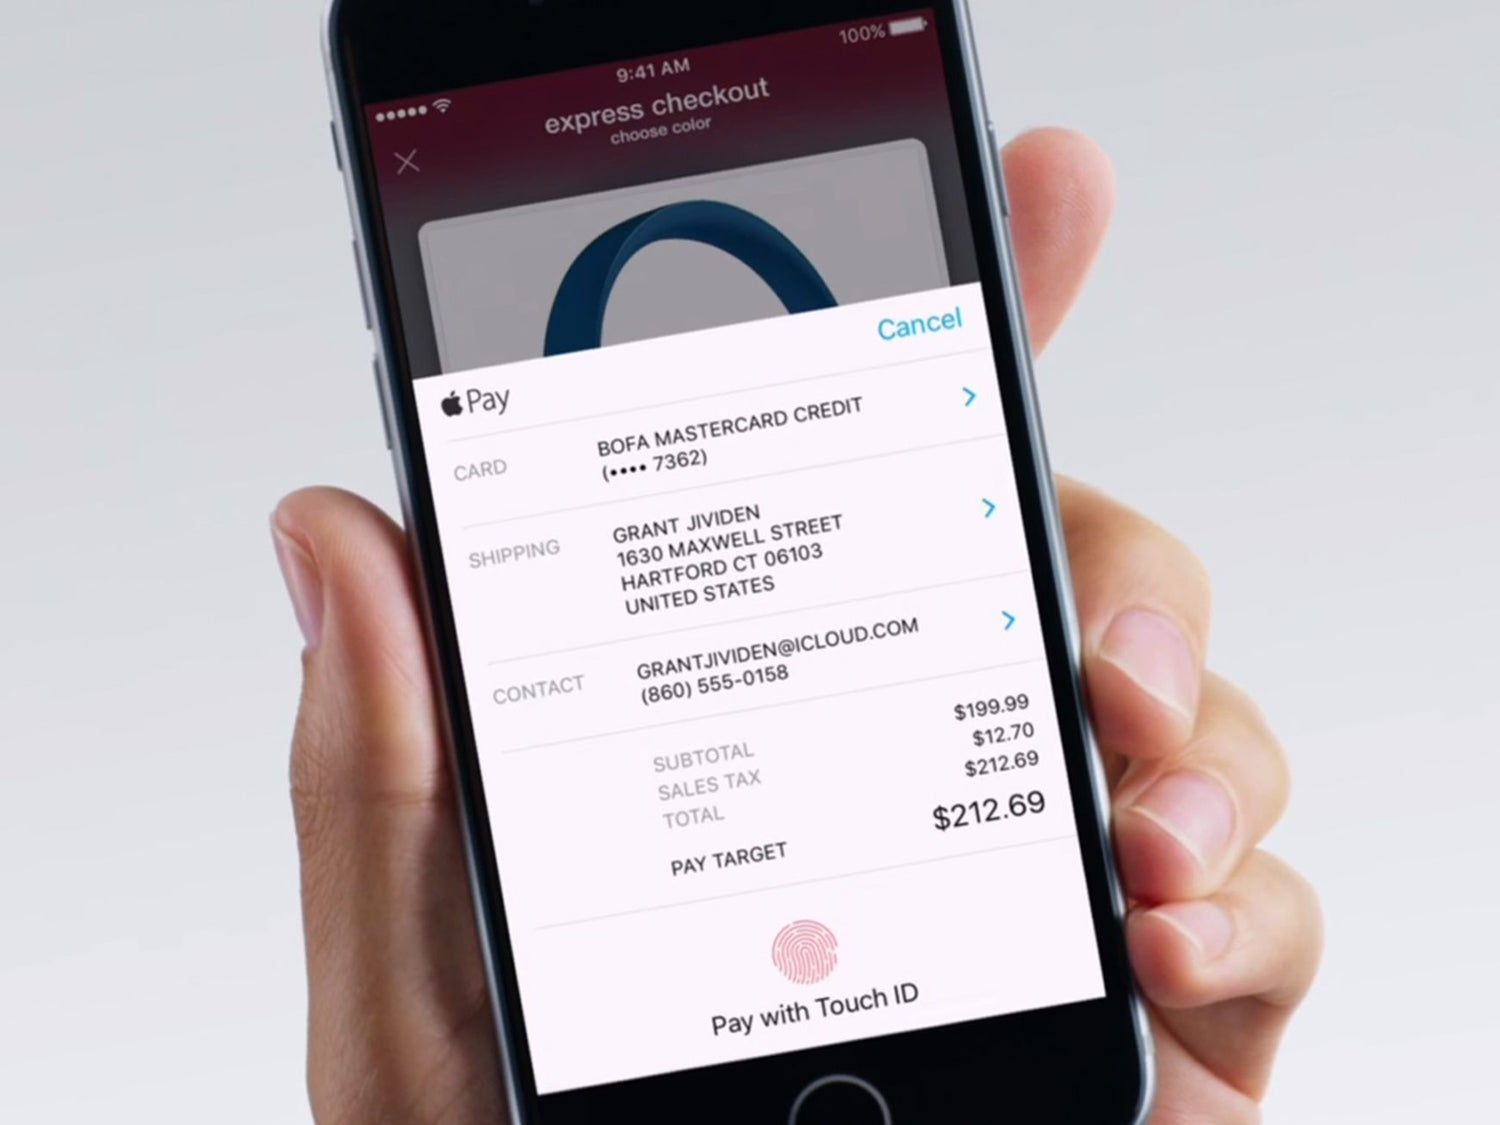 How to manage subscriptions for smartphone apps and save money quickly